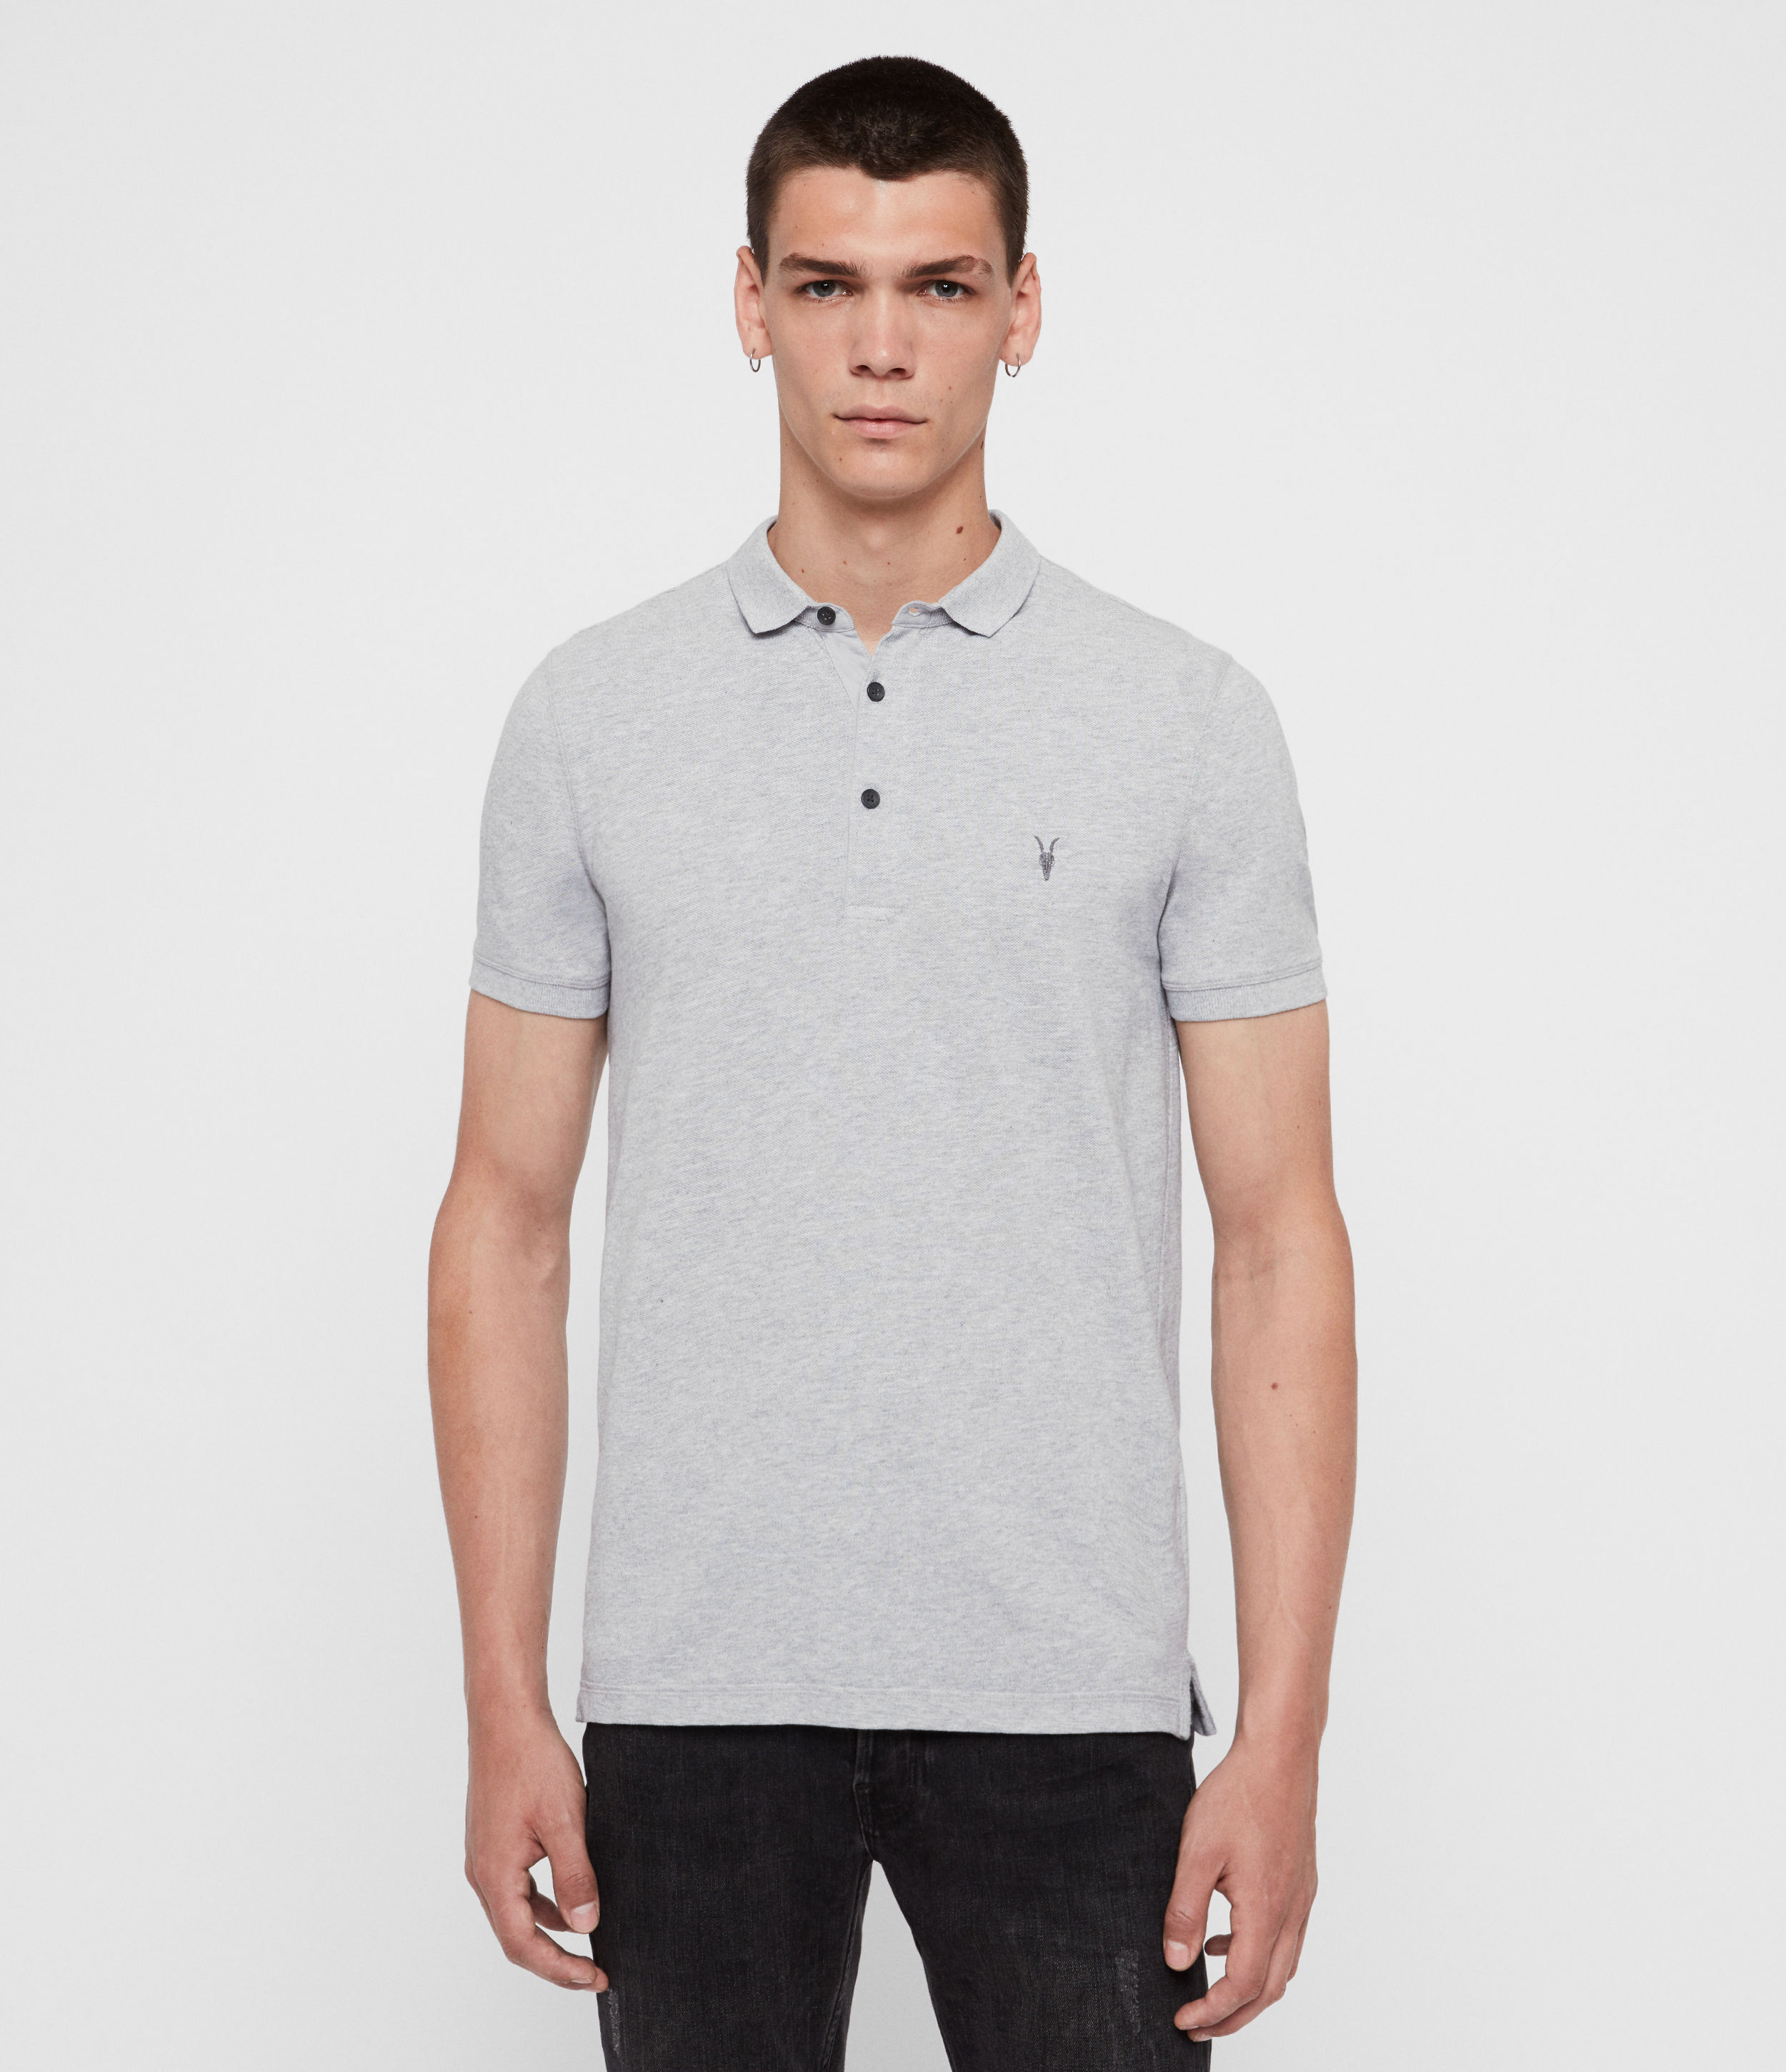 AllSaints Men's Cotton Slim Fit Reform Short Sleeve Polo Shirt, Grey, Size: S